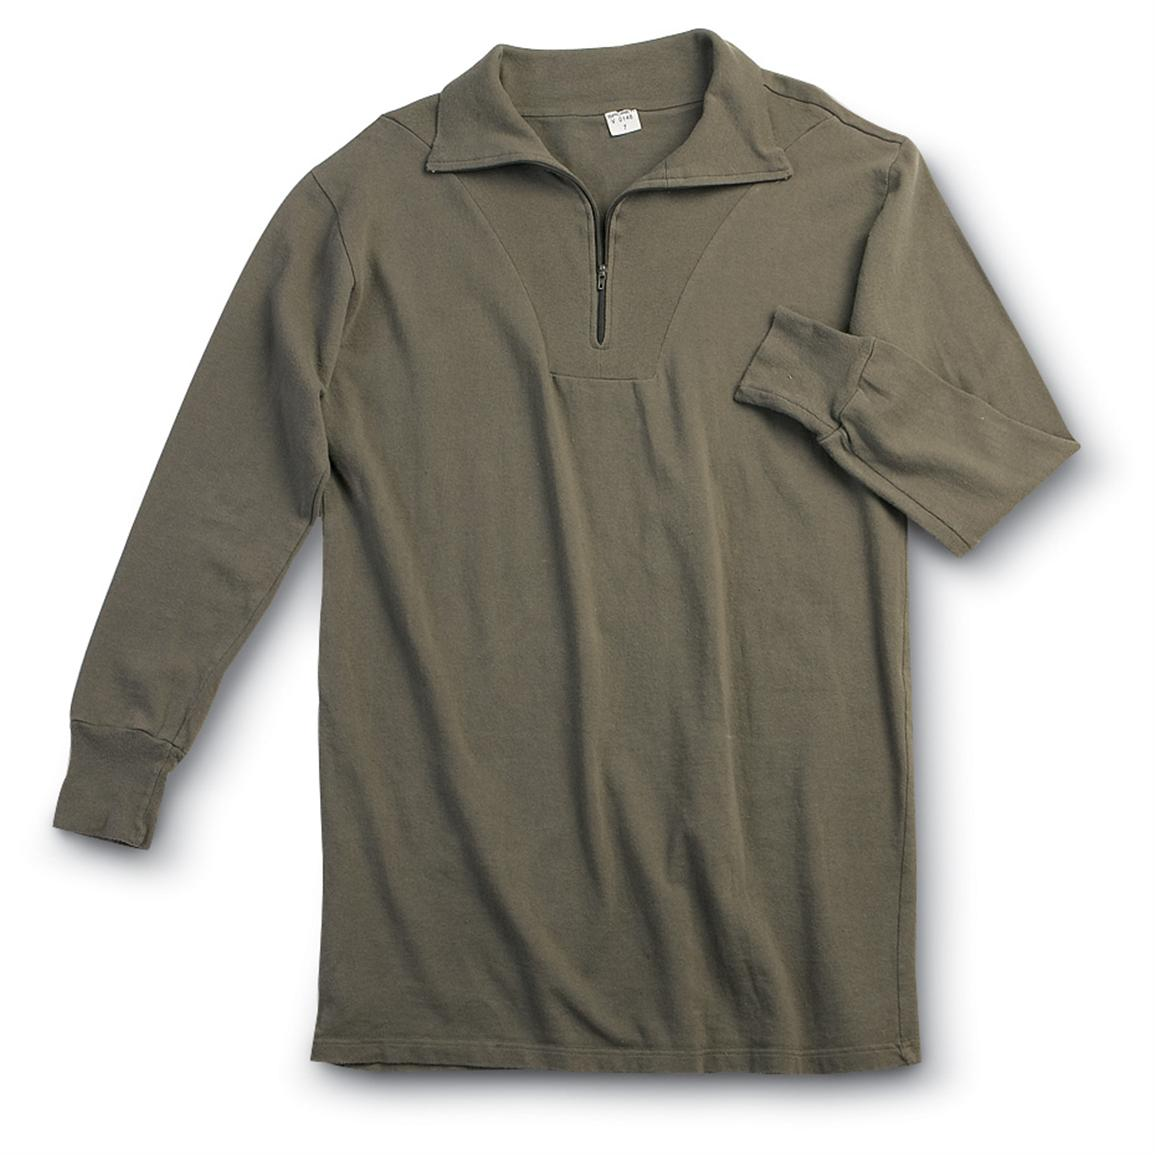 10 Used German Military surplus Tricot Shirts, Olive Drab